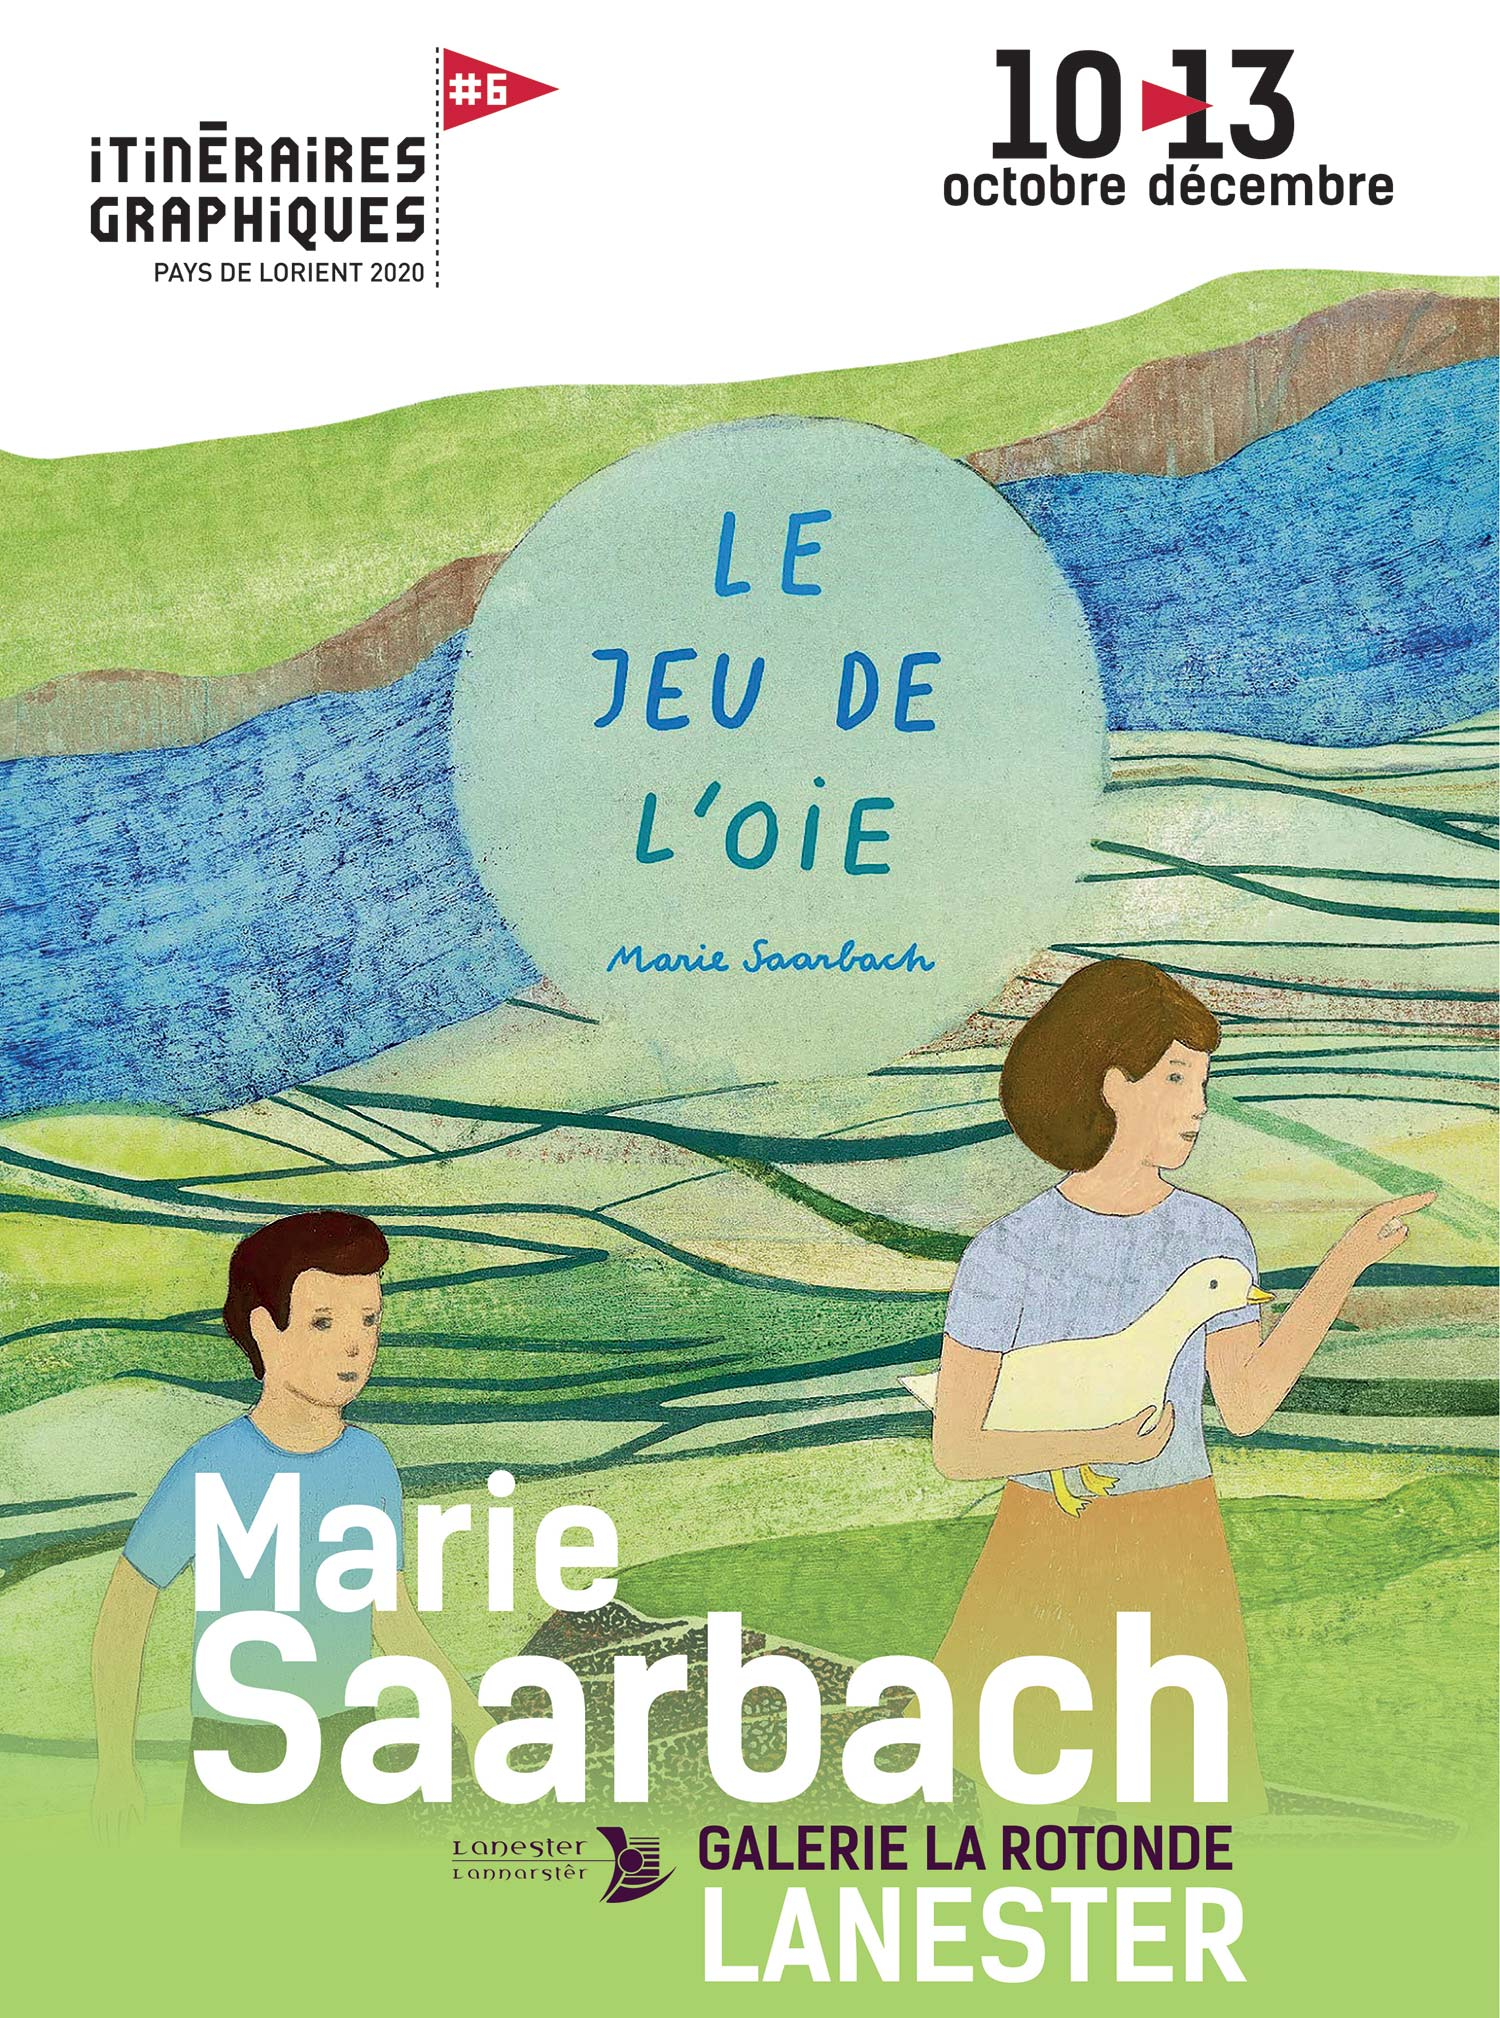 Affiche exposition Marie Saarbach